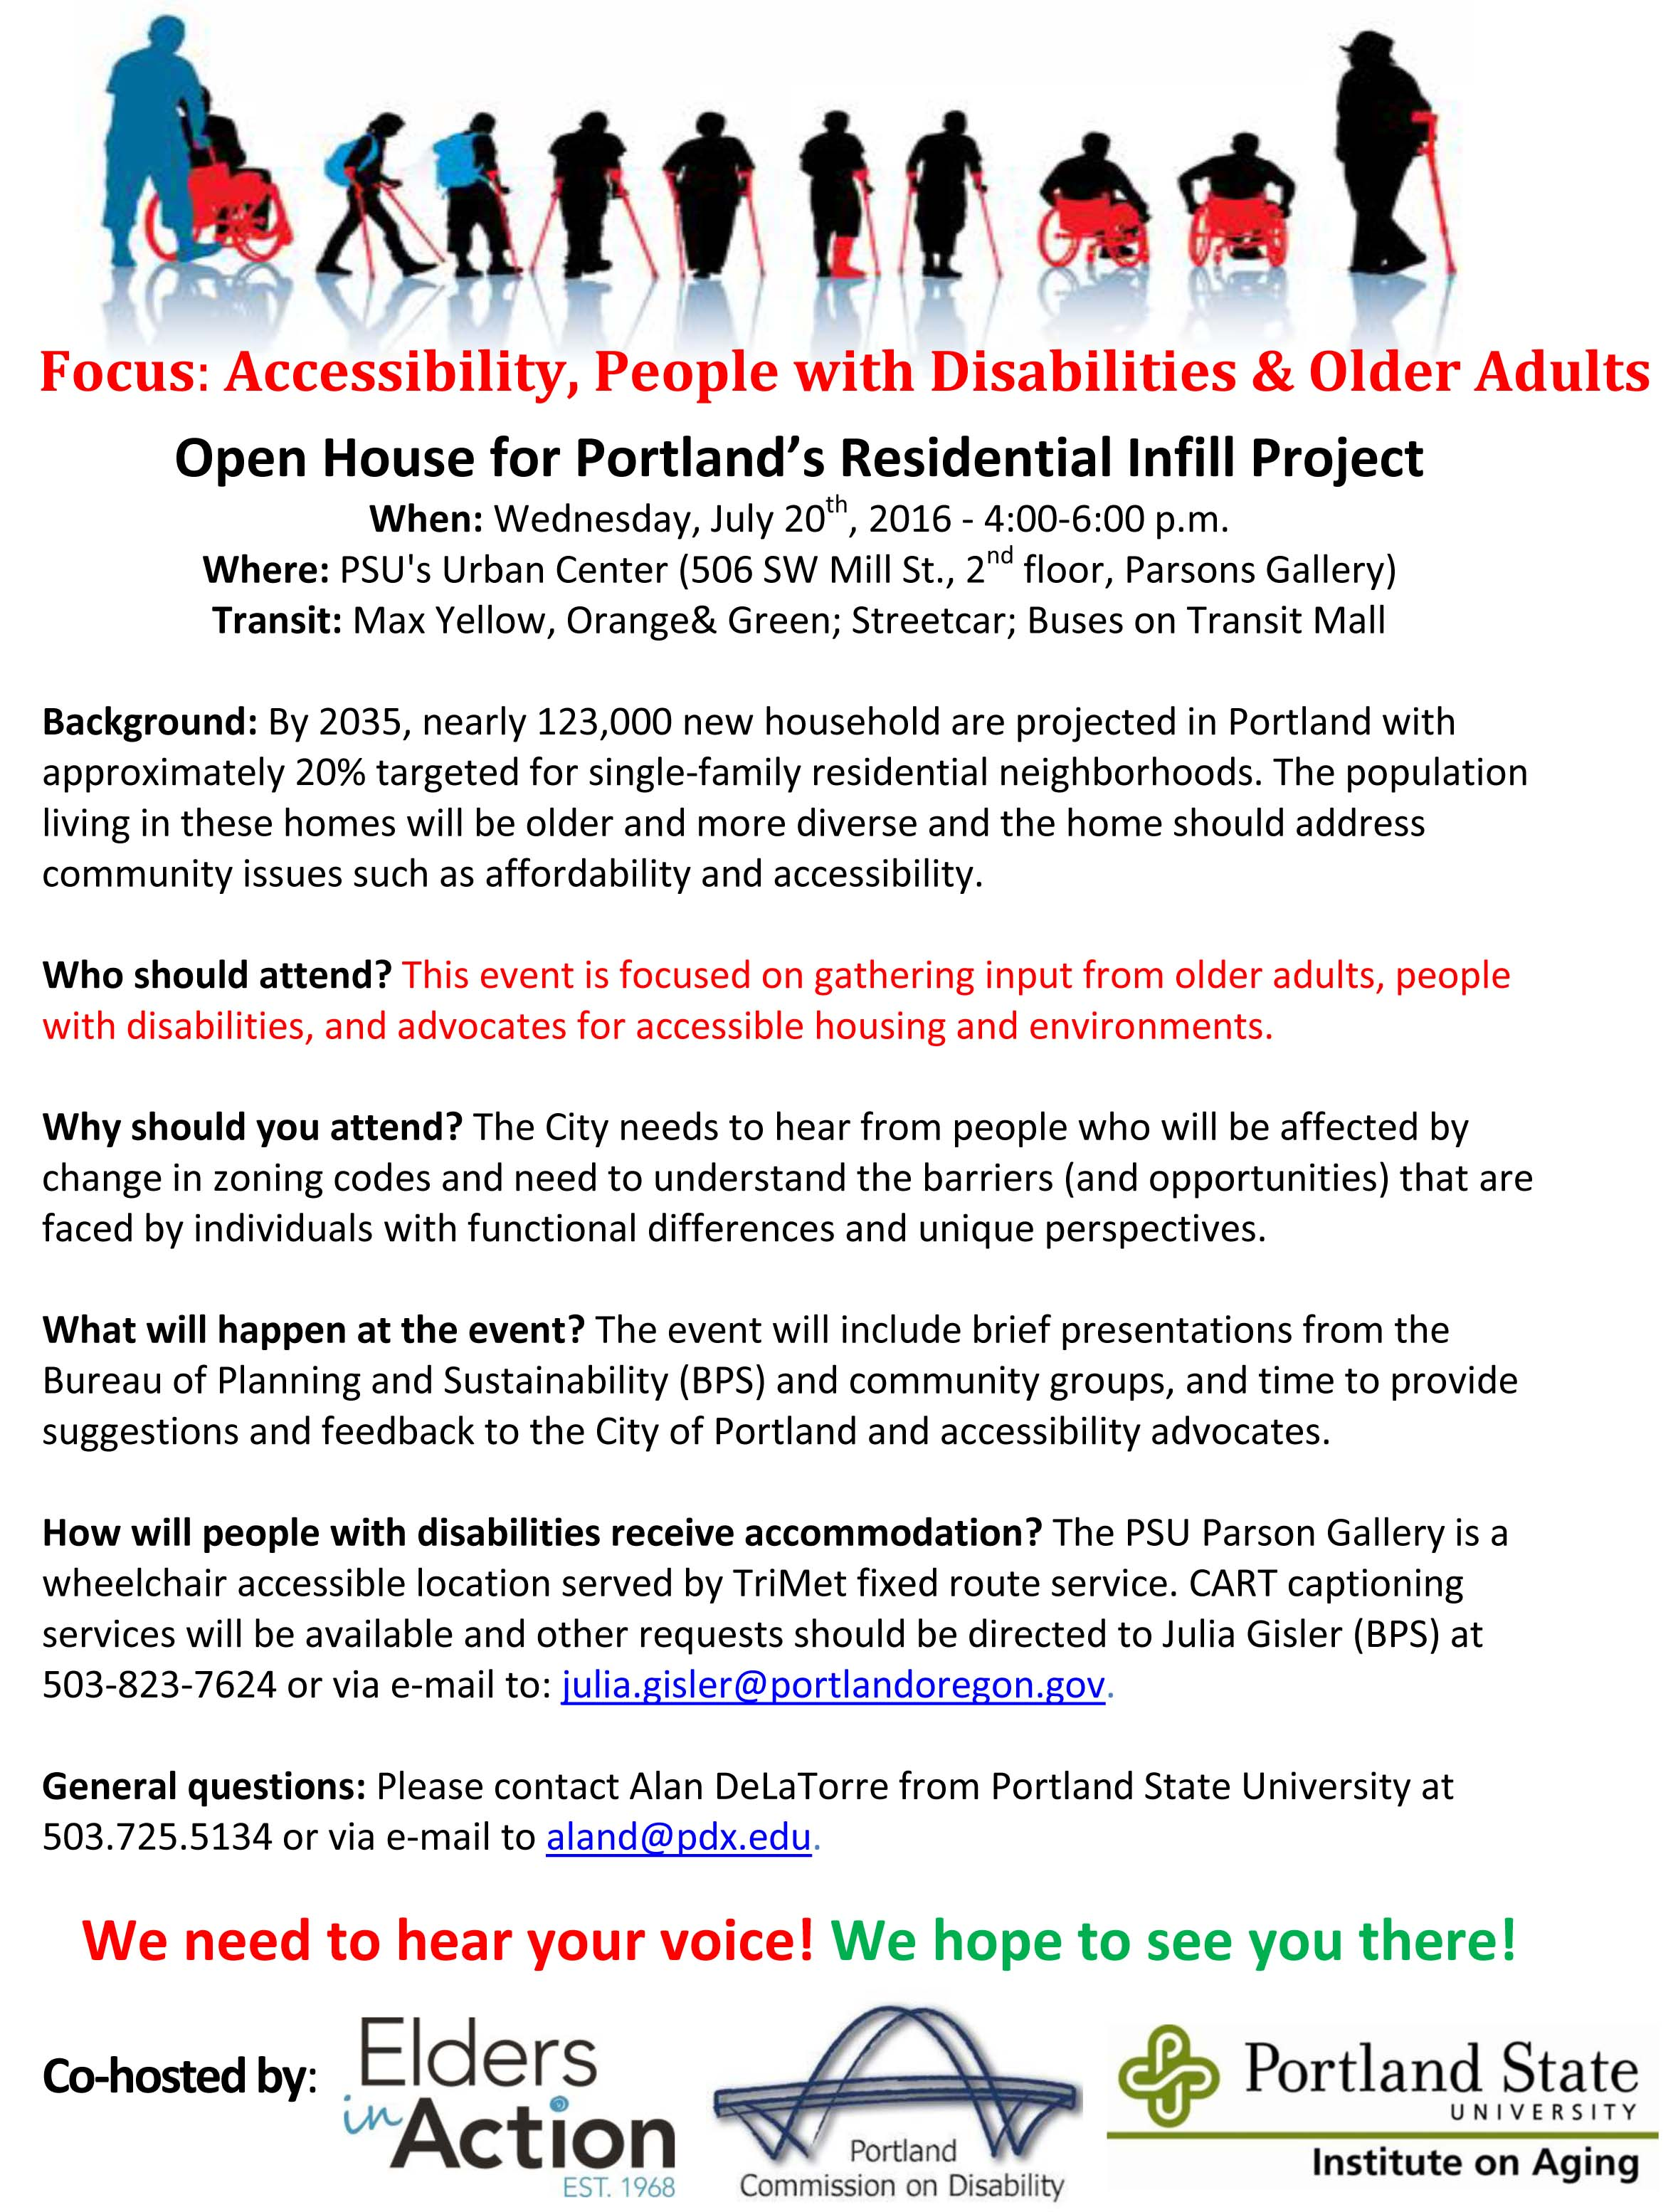 Residential Infill Project Open House_Accessibility_PSU_07 20 16